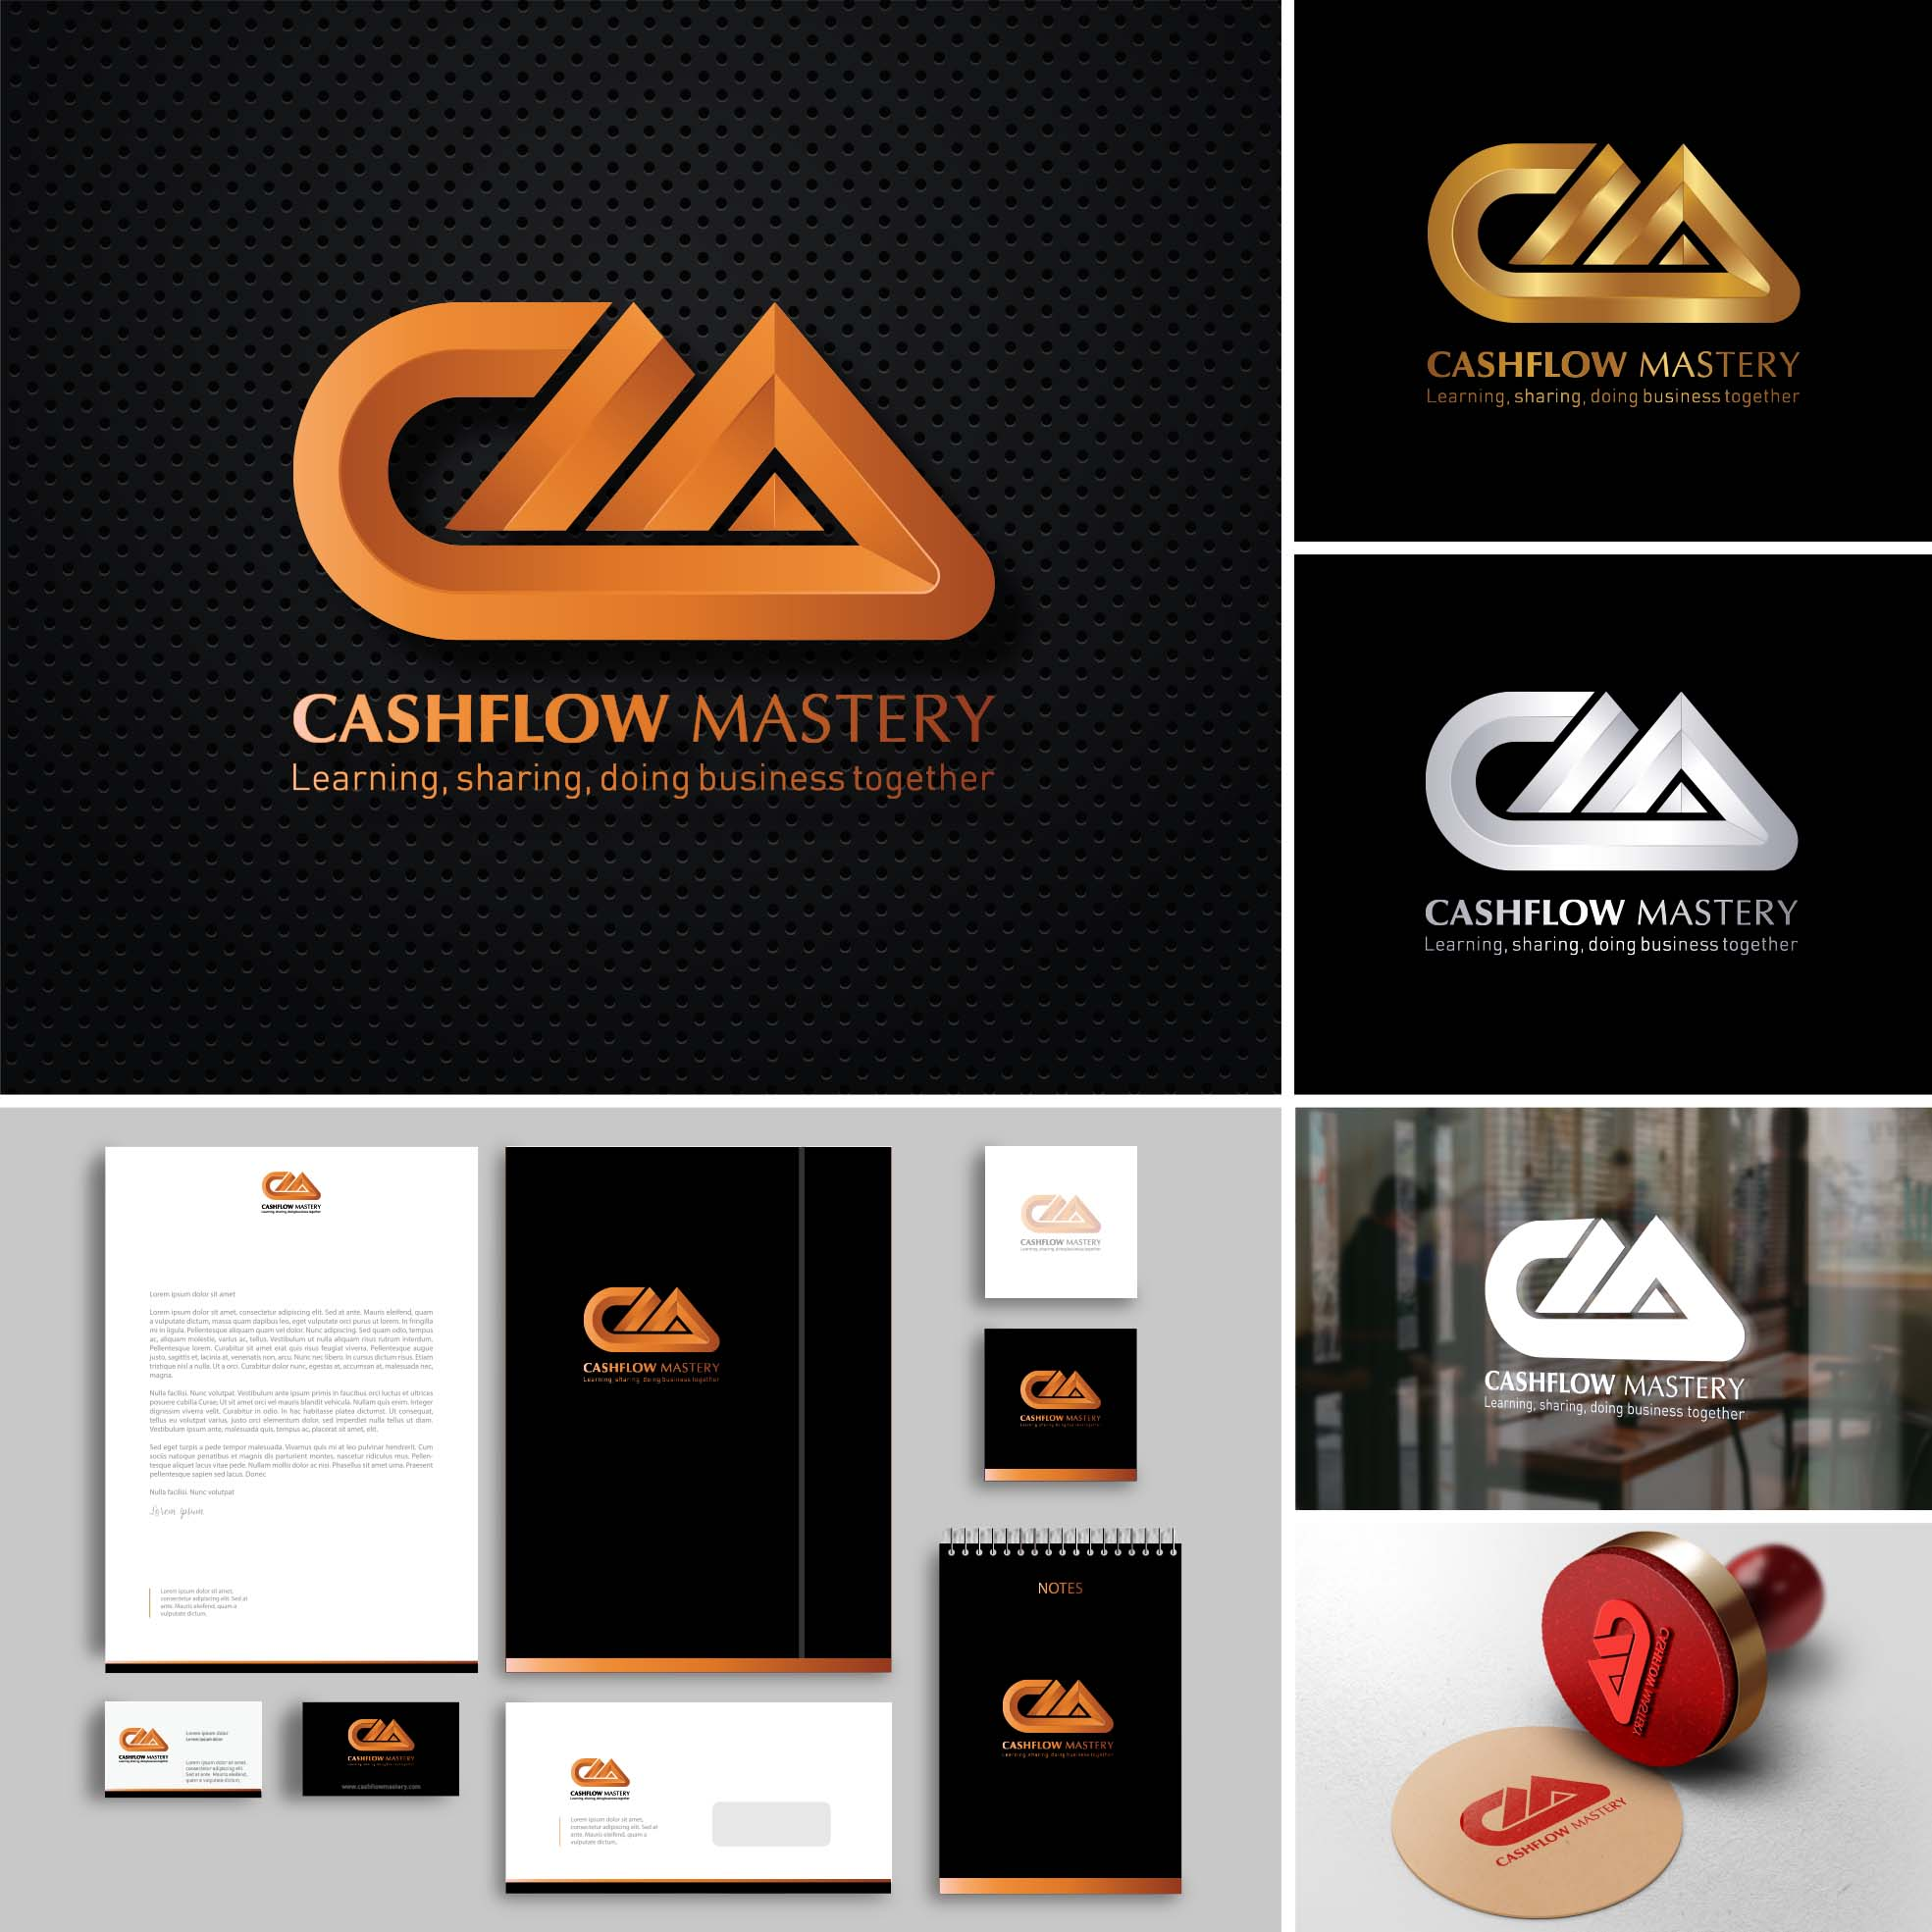 Stationery Design  GB Logo Design